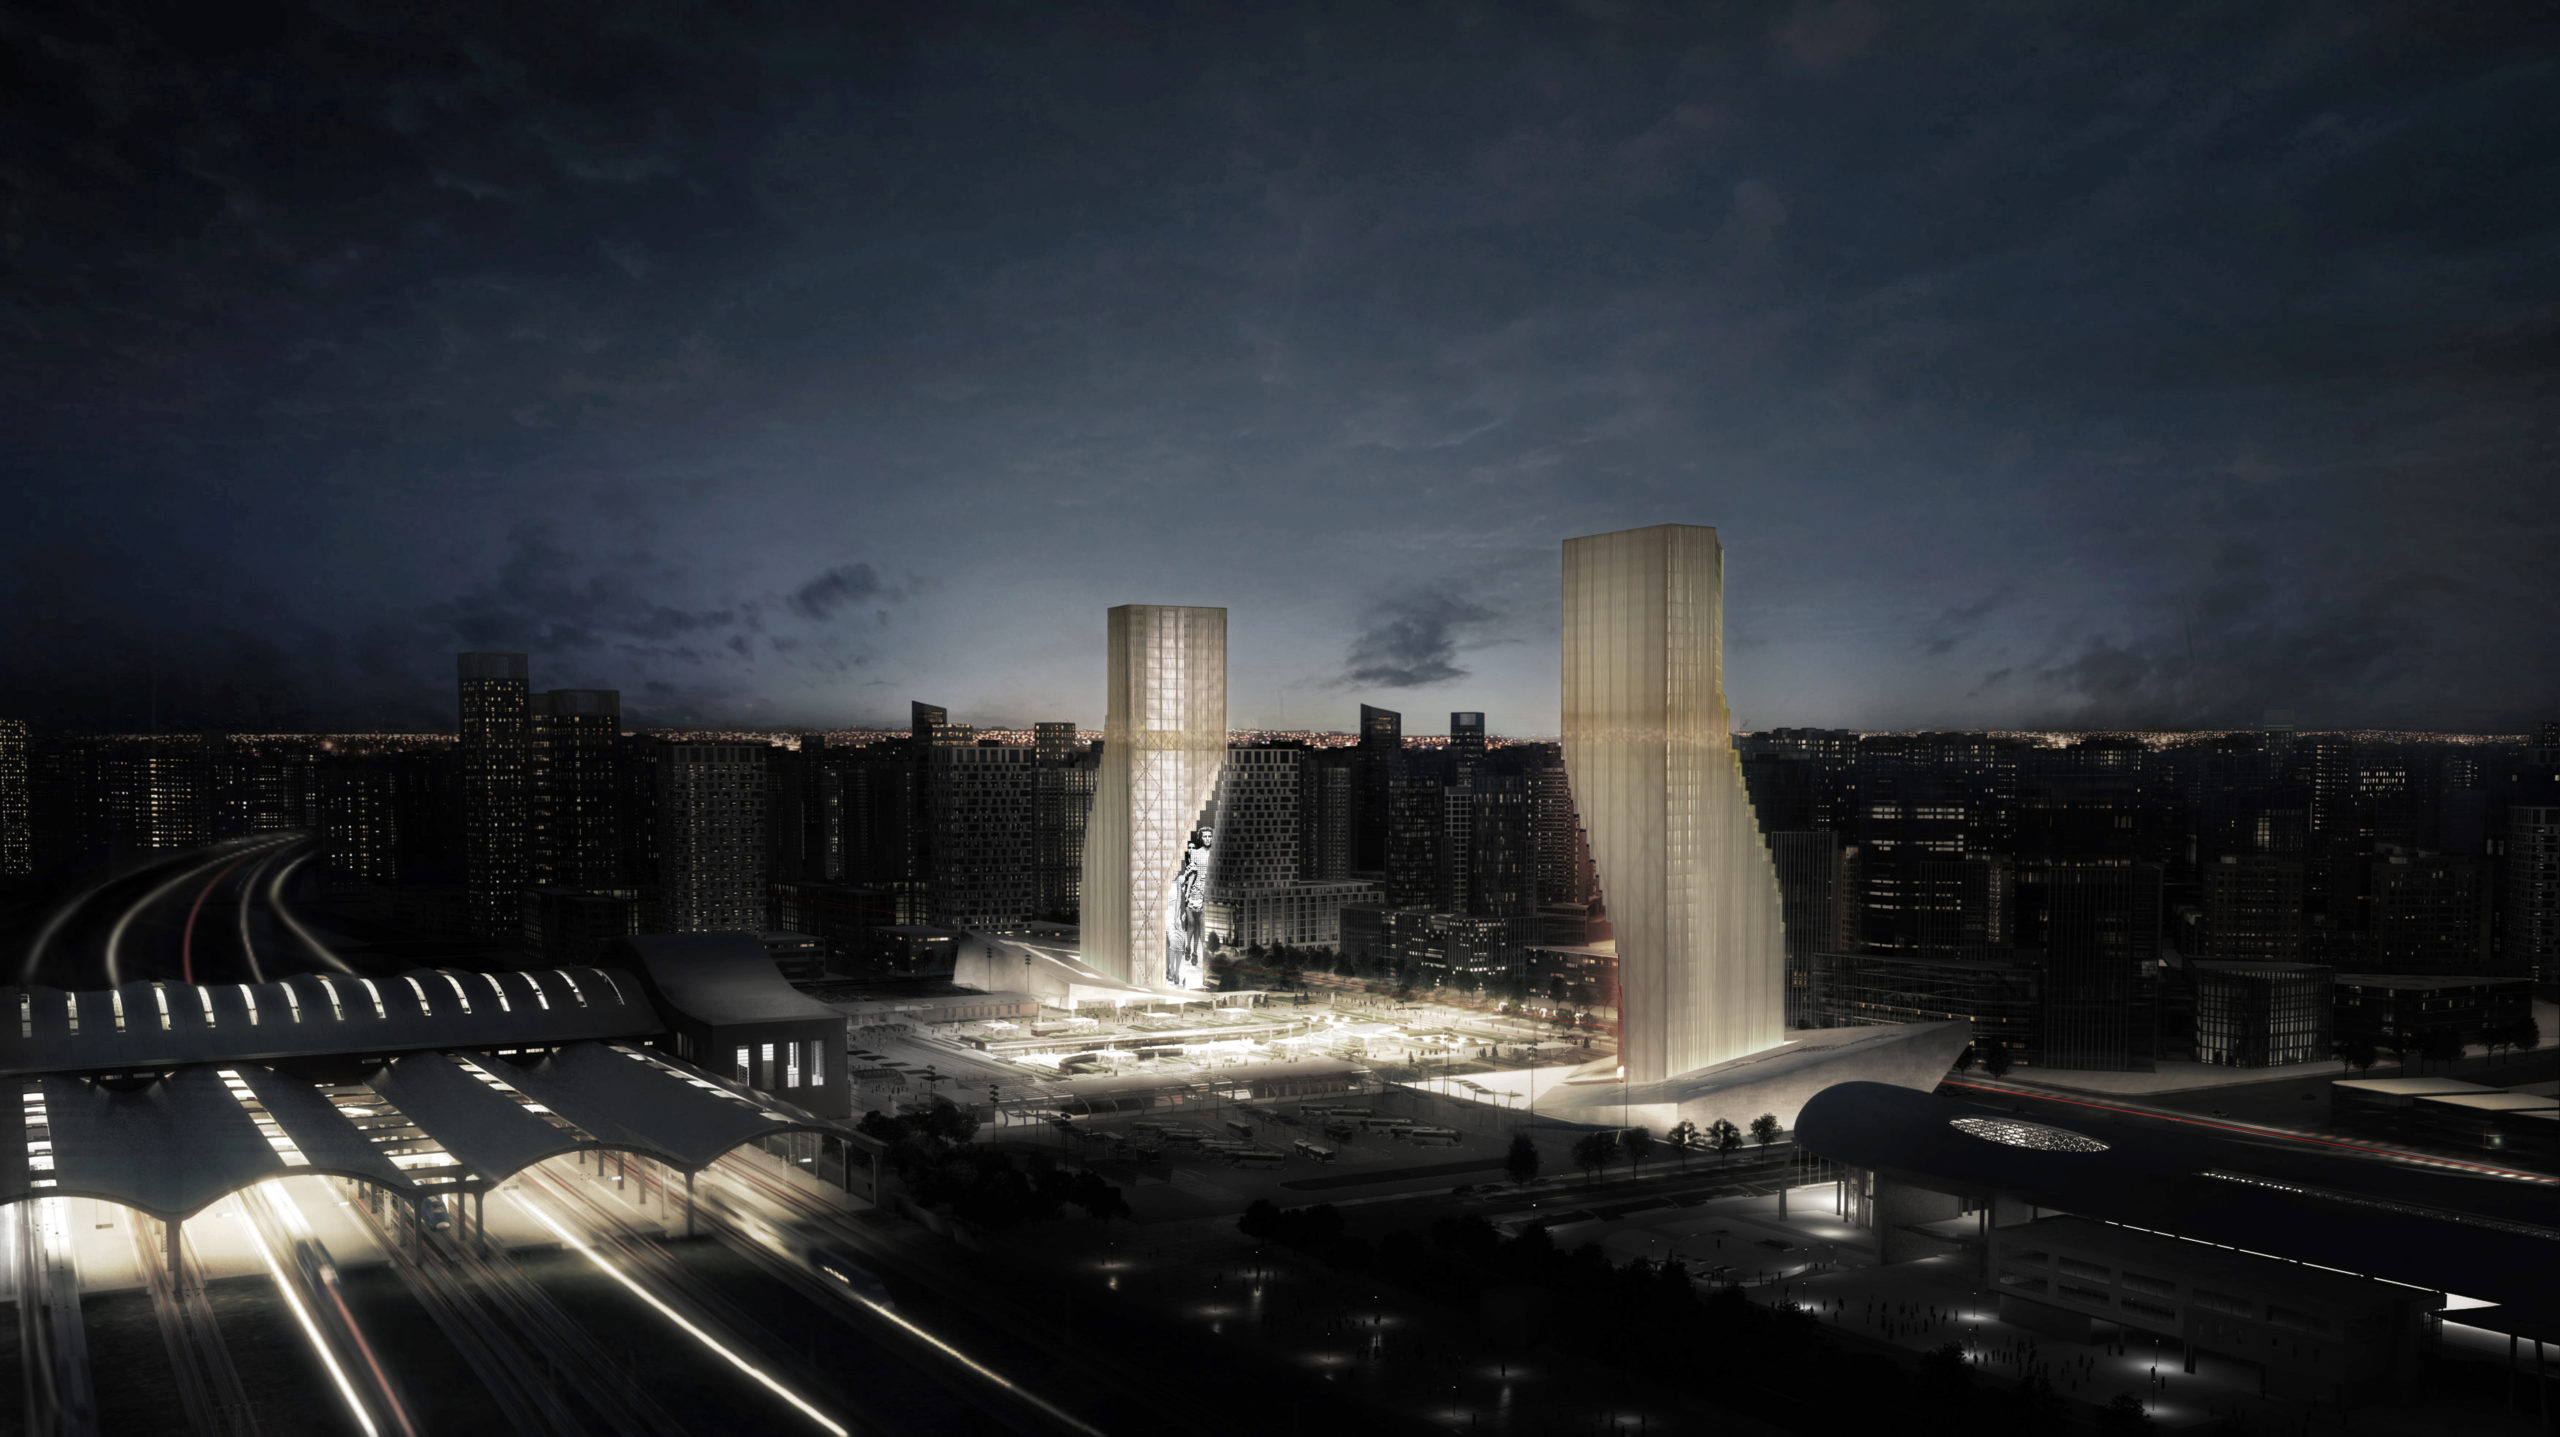 spatial practice architecture office Los Angeles Hong Kong harbin twin towers harbin china night view